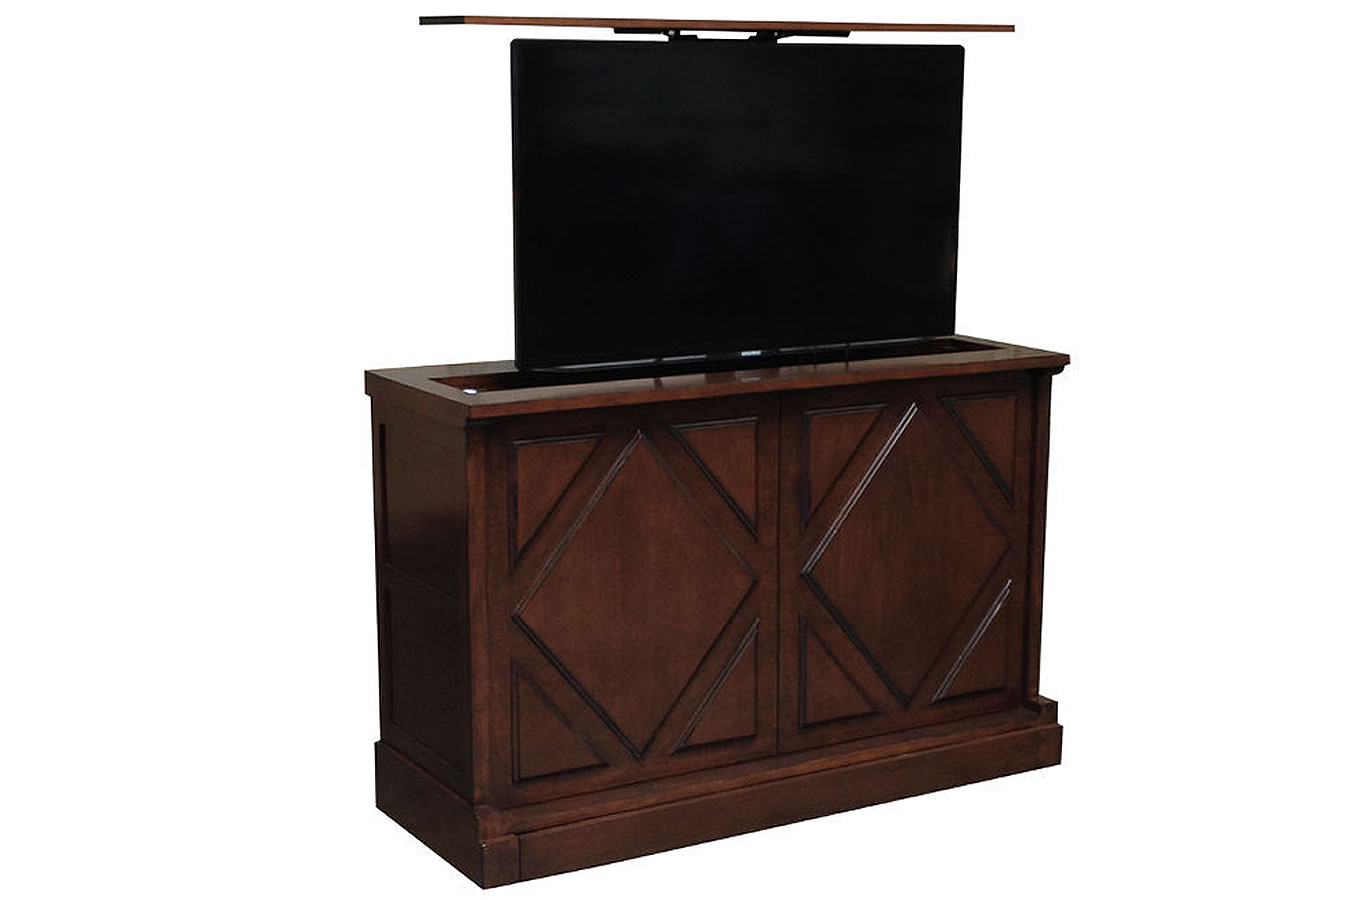 Poncho Villa TV lift furnitureby Cabinet Tronix comes with a 10 year warranty.